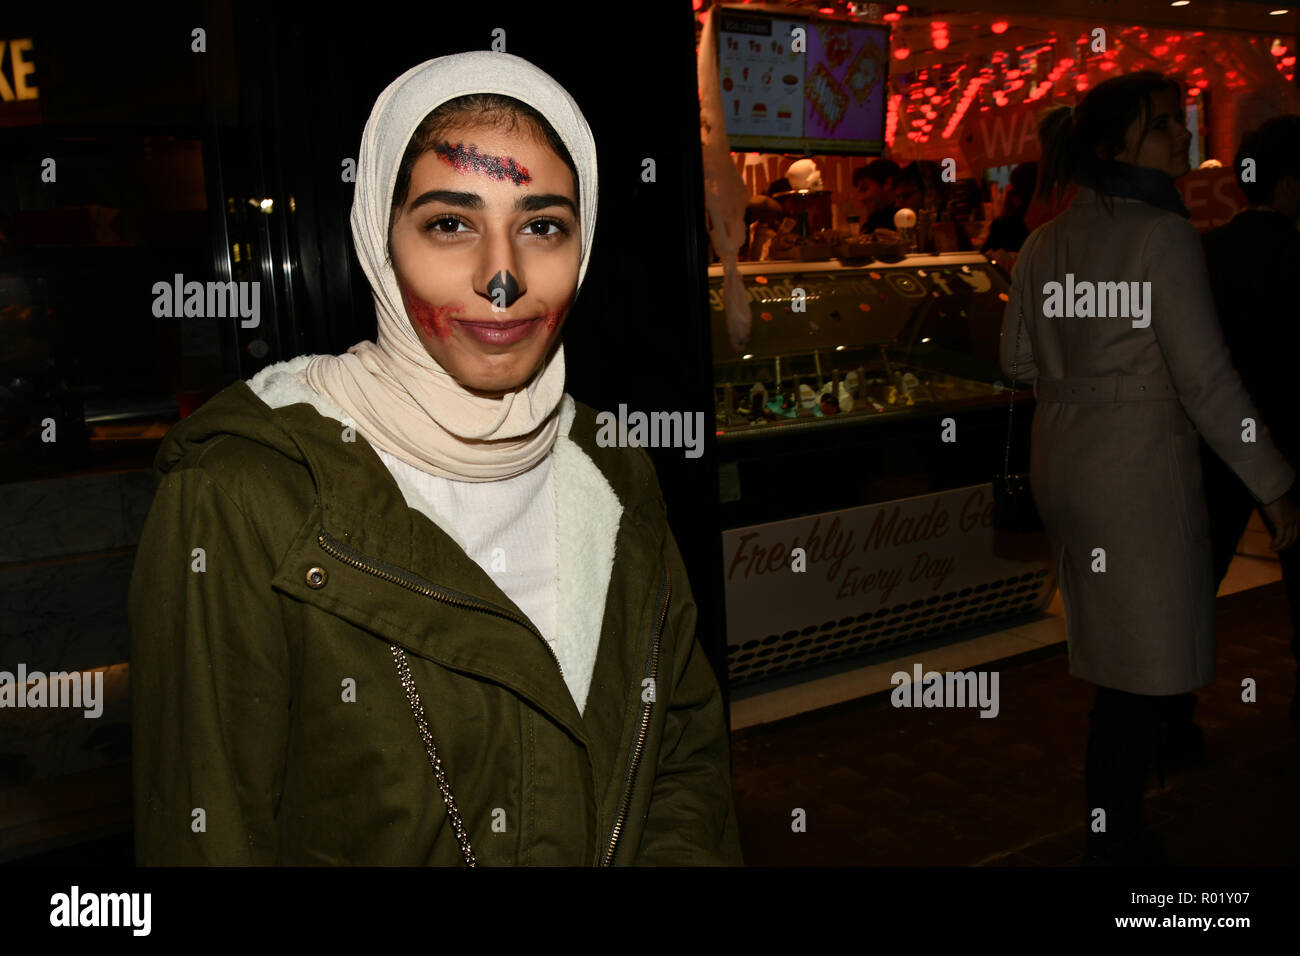 London, UK. 31st Oct, 2018. A lady wearing hijab with Halloween face painting a night in Westend on 31 October 2018, London, UK. Credit: Picture Capital/Alamy Live News Stock Photo